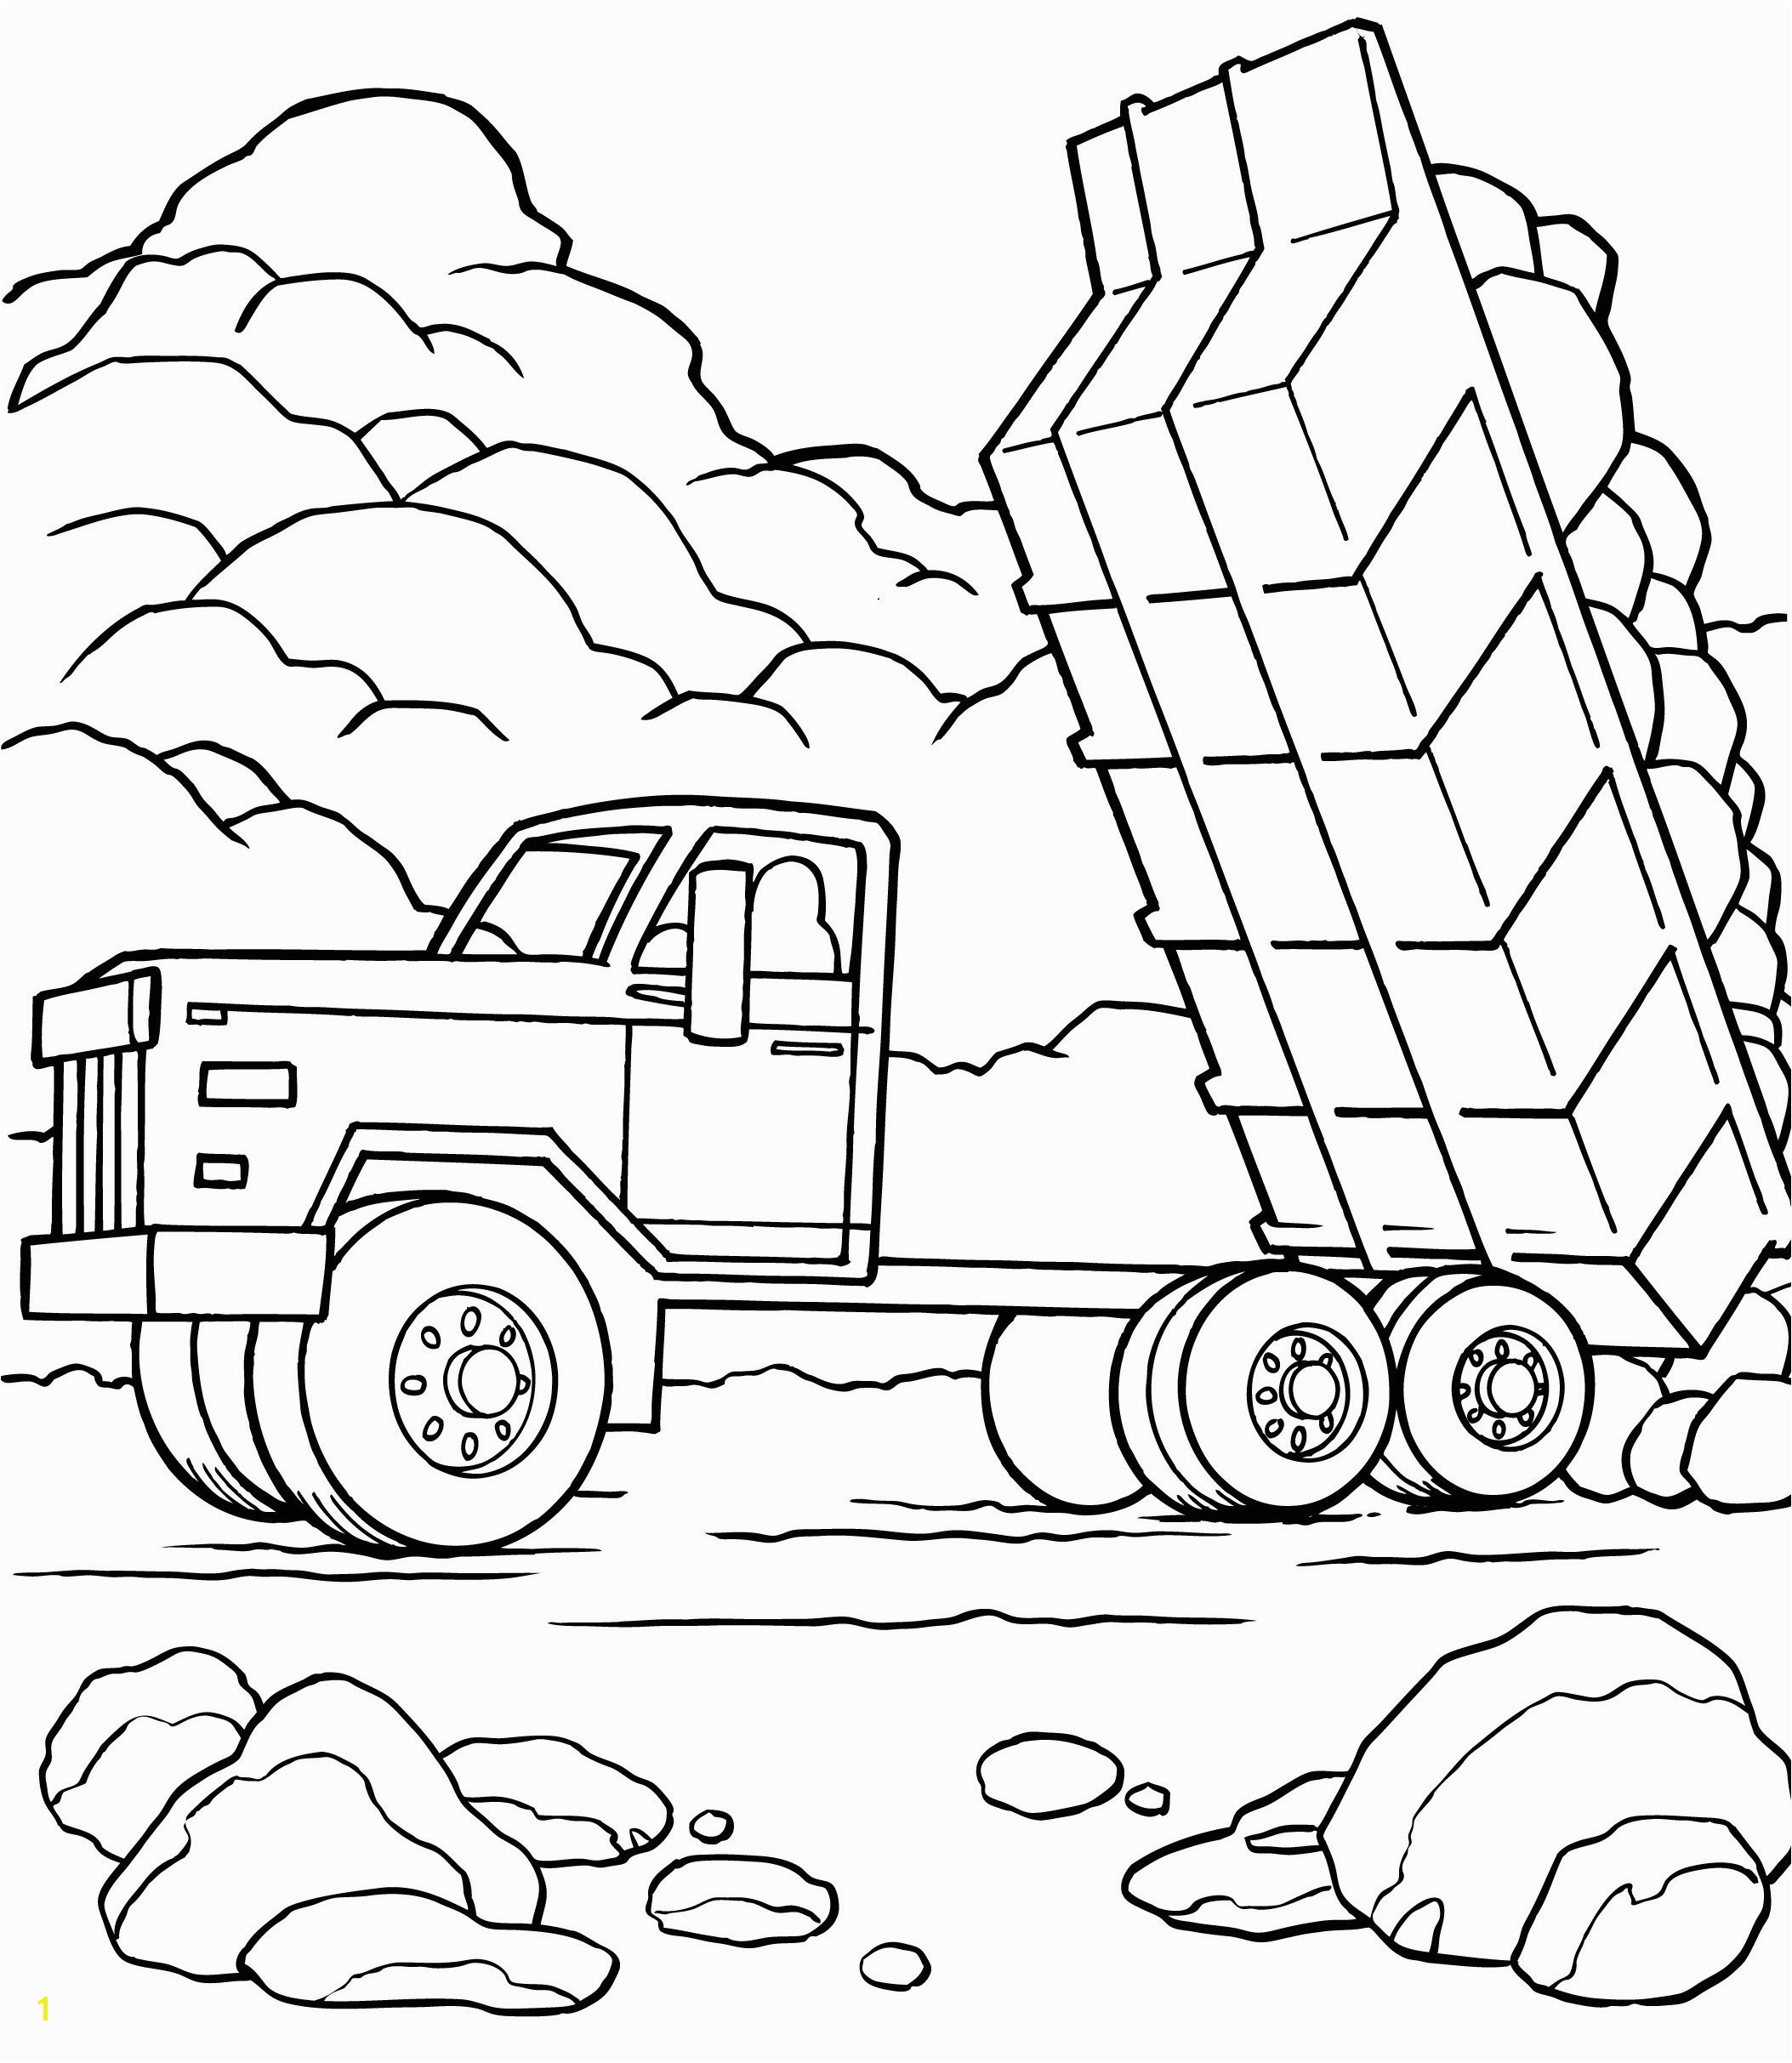 Vehicle Coloring Pages For Kids Crafting Dump Truck Coloring 11 Tipper Full Od Sand Page Dump